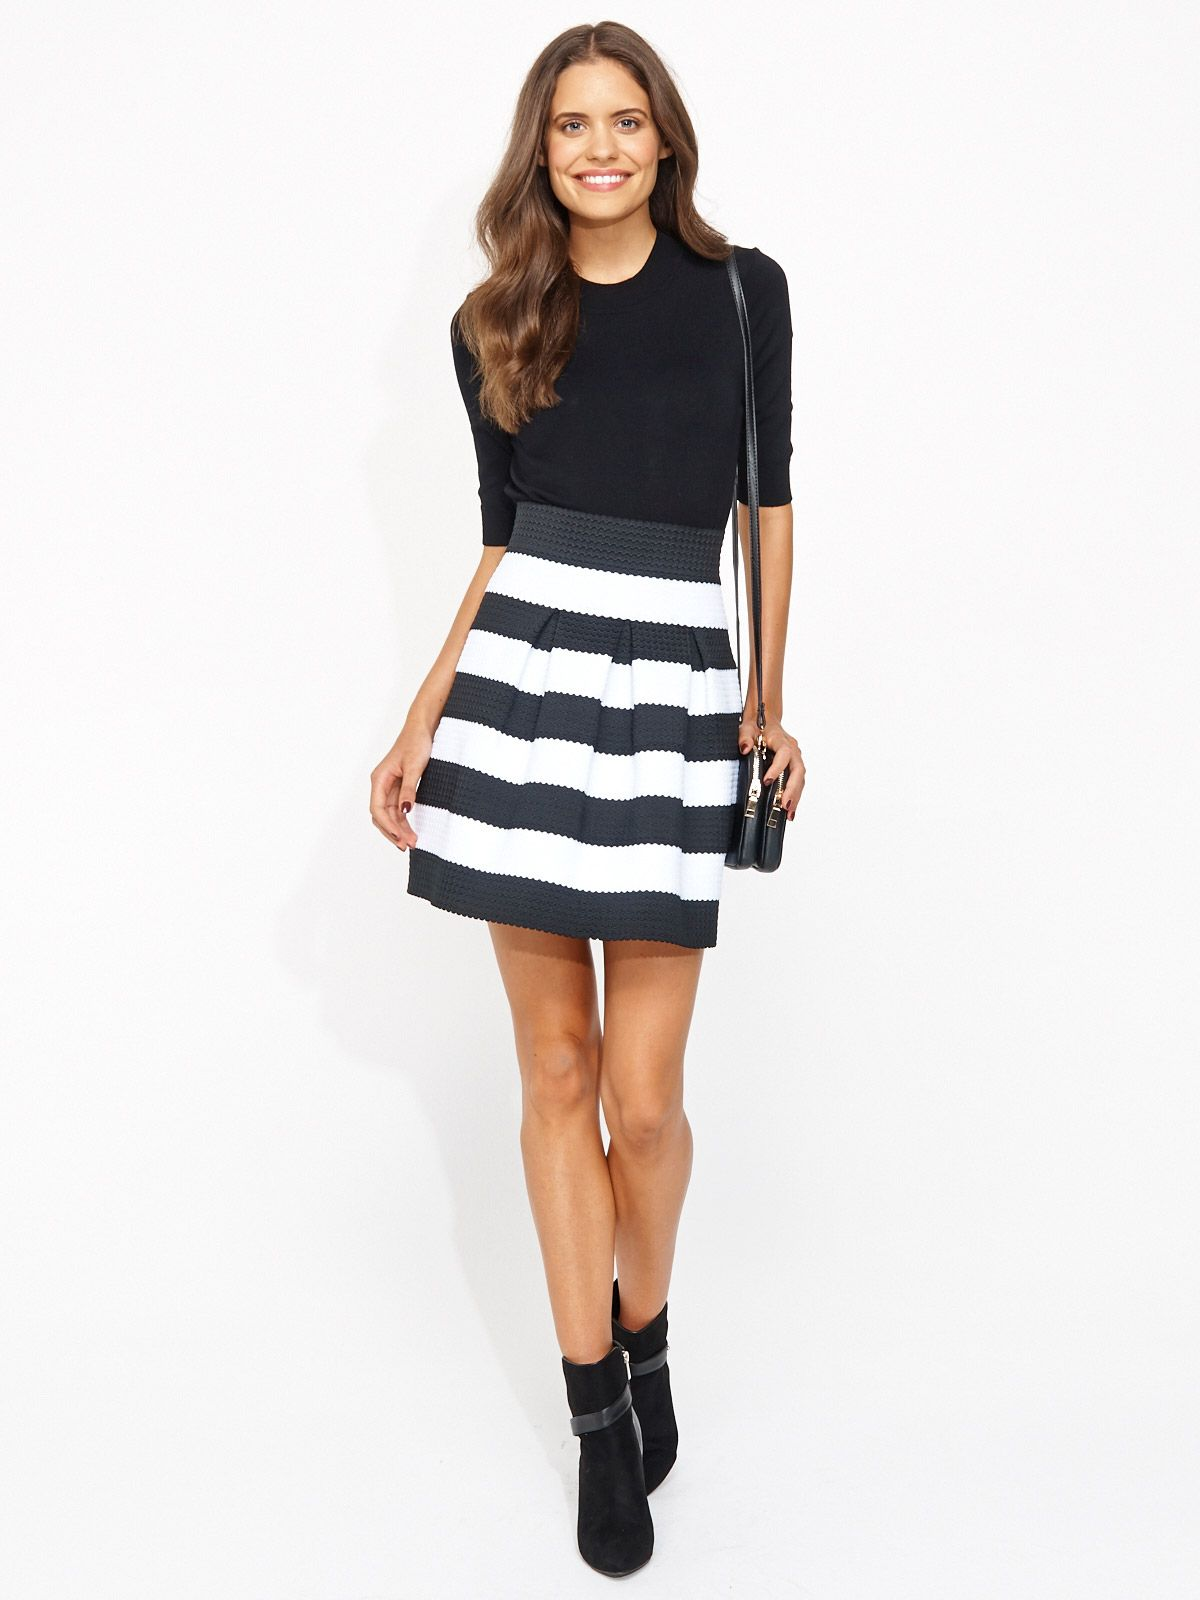 Bandage Elastic Skirt Portmans Black White Stripe Skirt Date